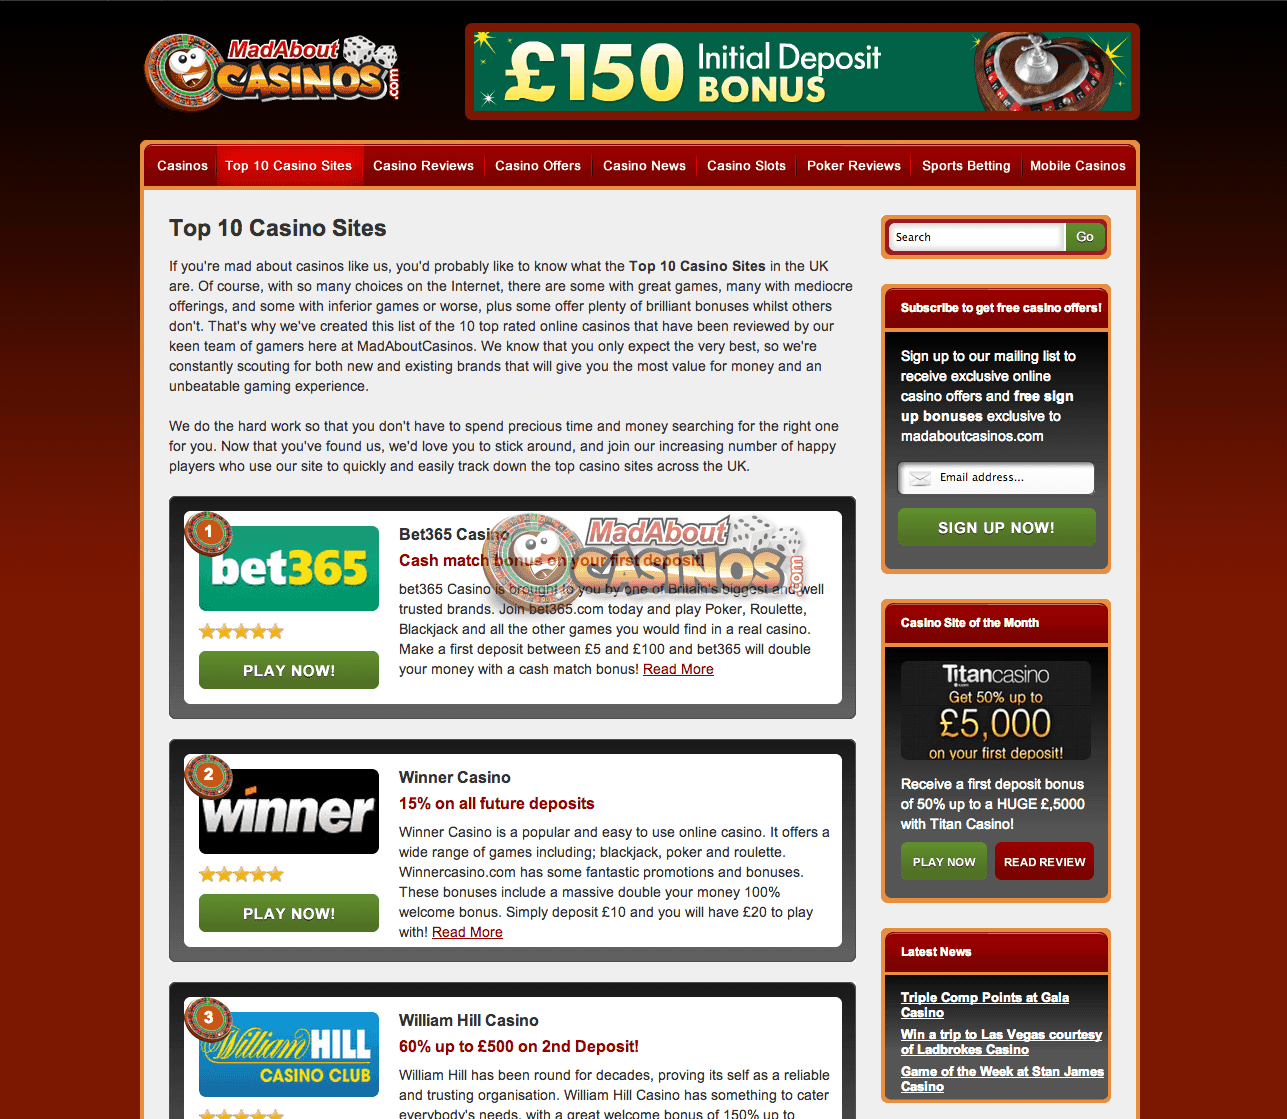 Madabout Casino's, top 10 casino sites http//www